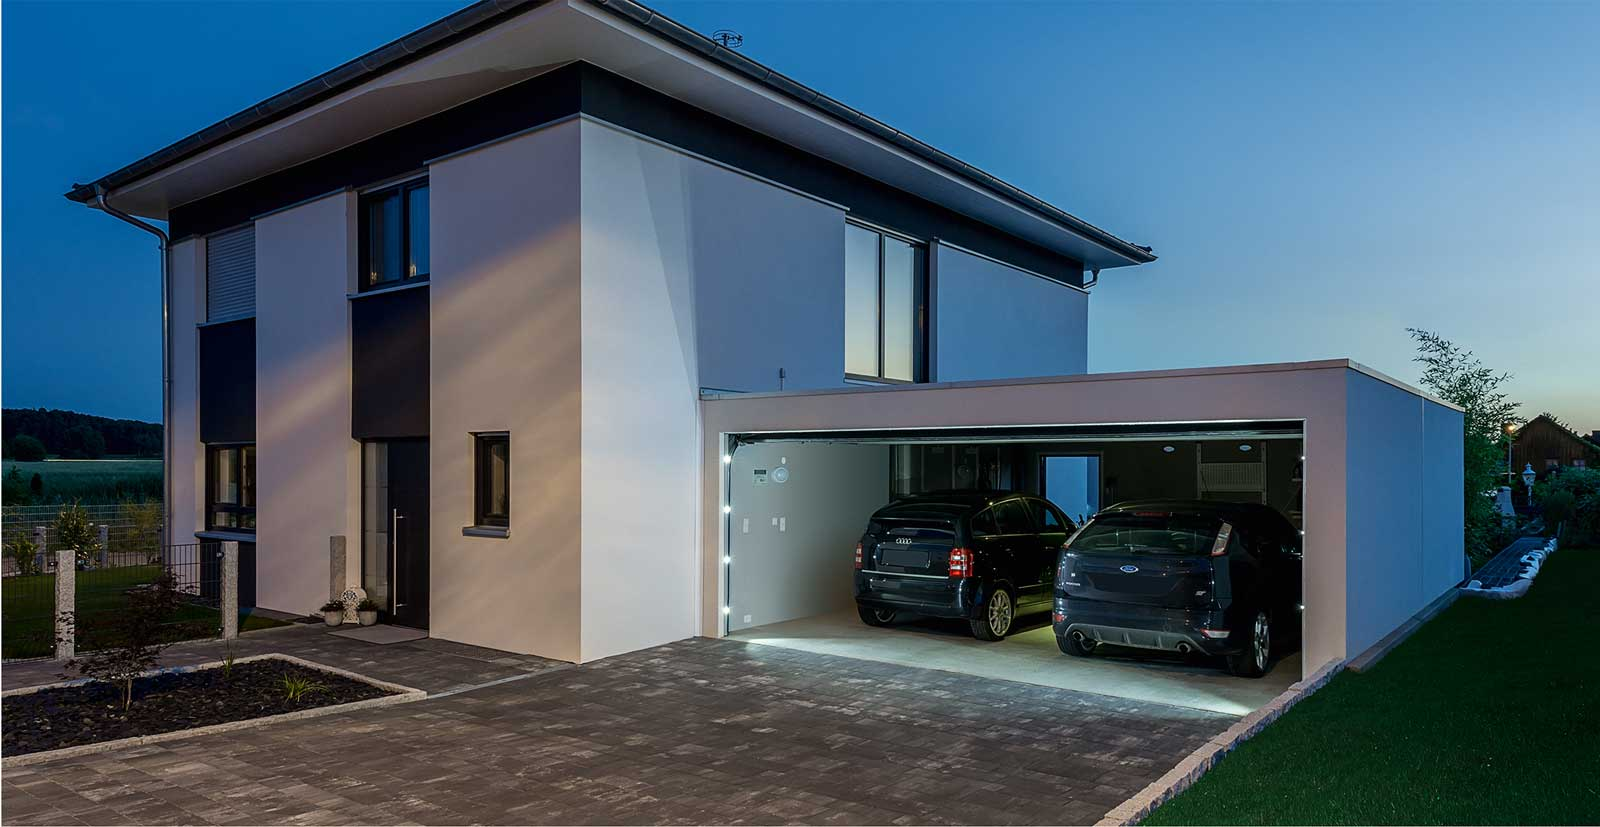 Concrete garage prefabricated and carport by Bangerl